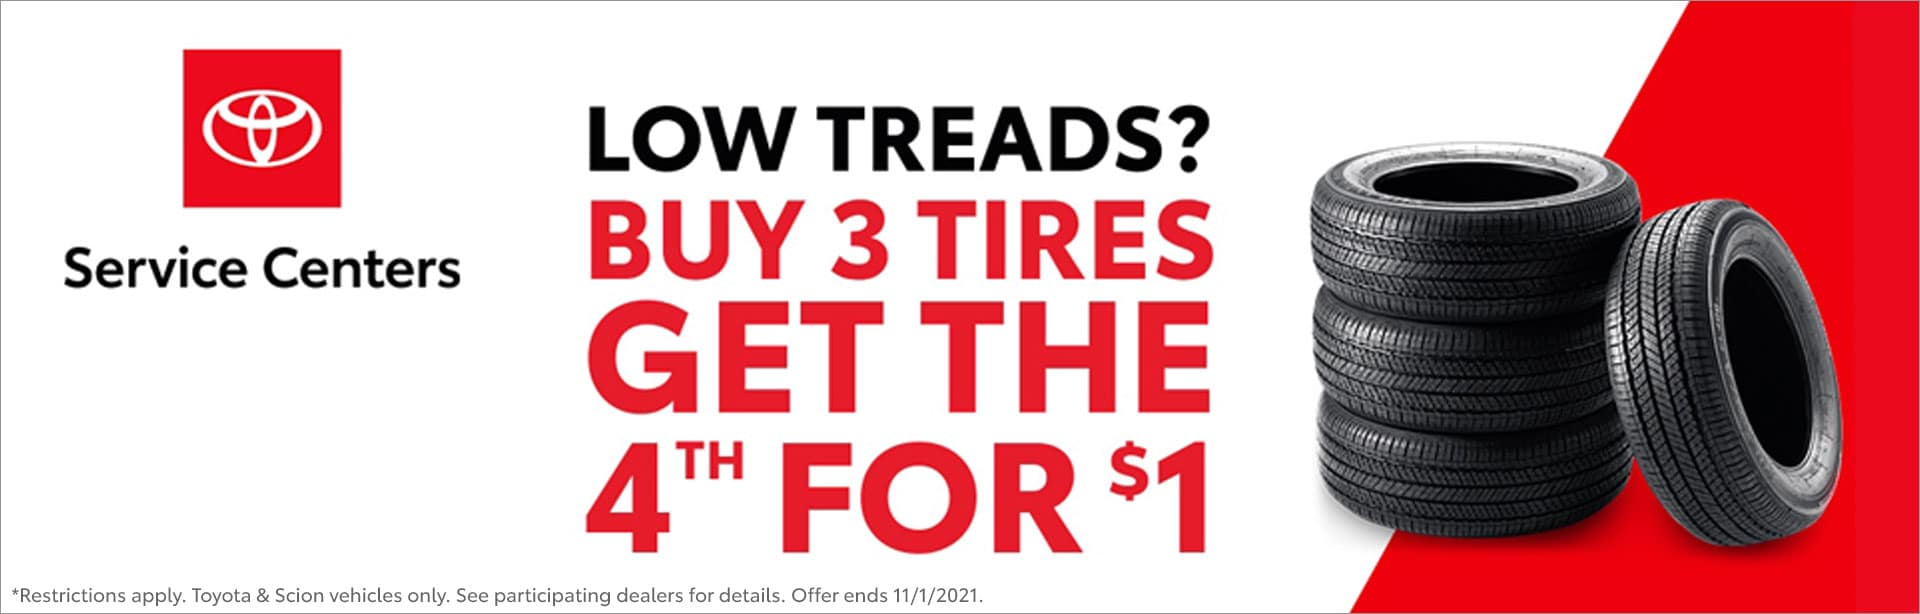 2021-10-B3G1-for-$1-Tires_1920x614_TDDS